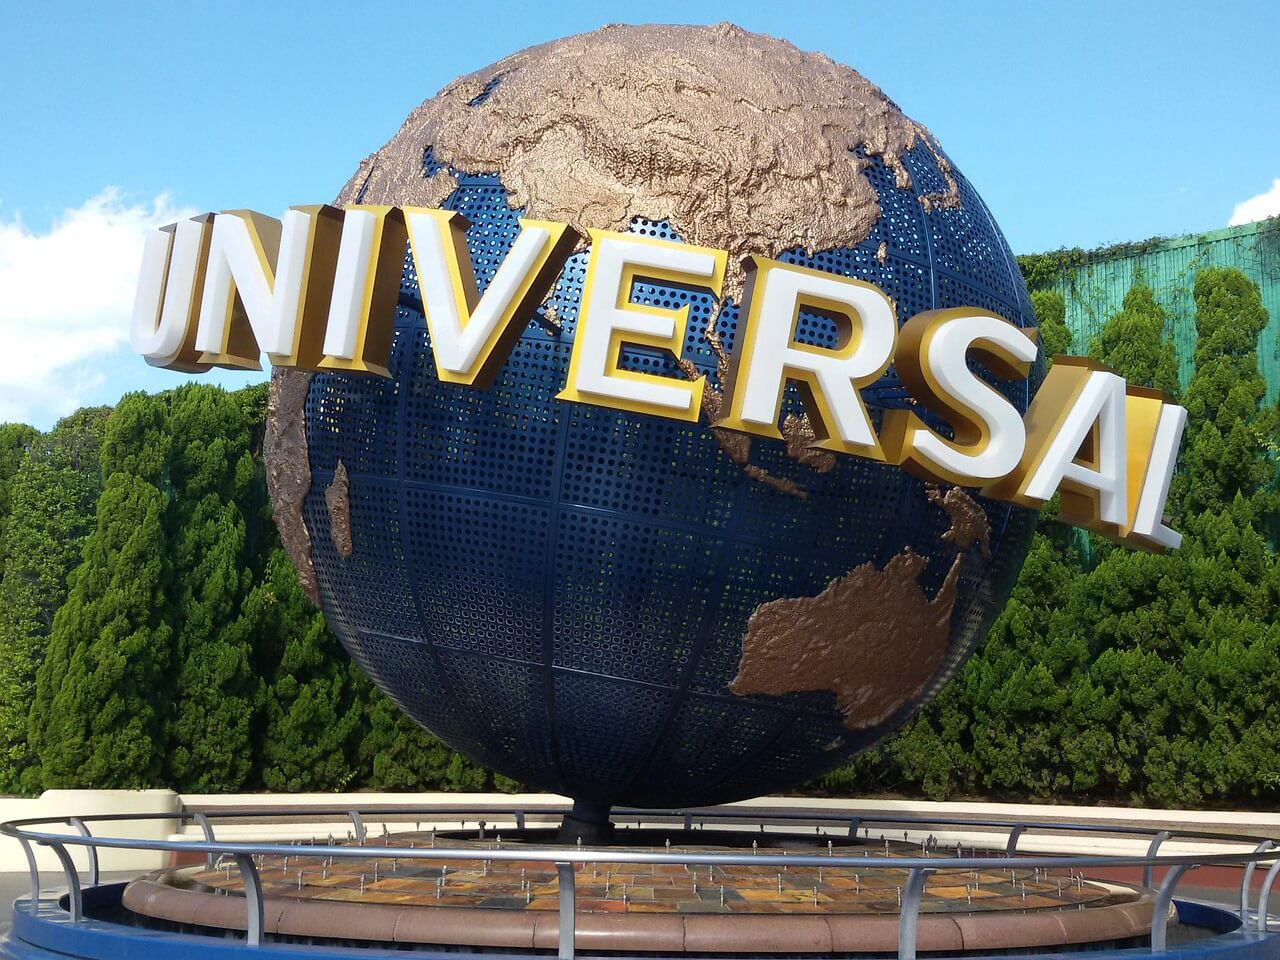 The entrance of Universal Studios Japan